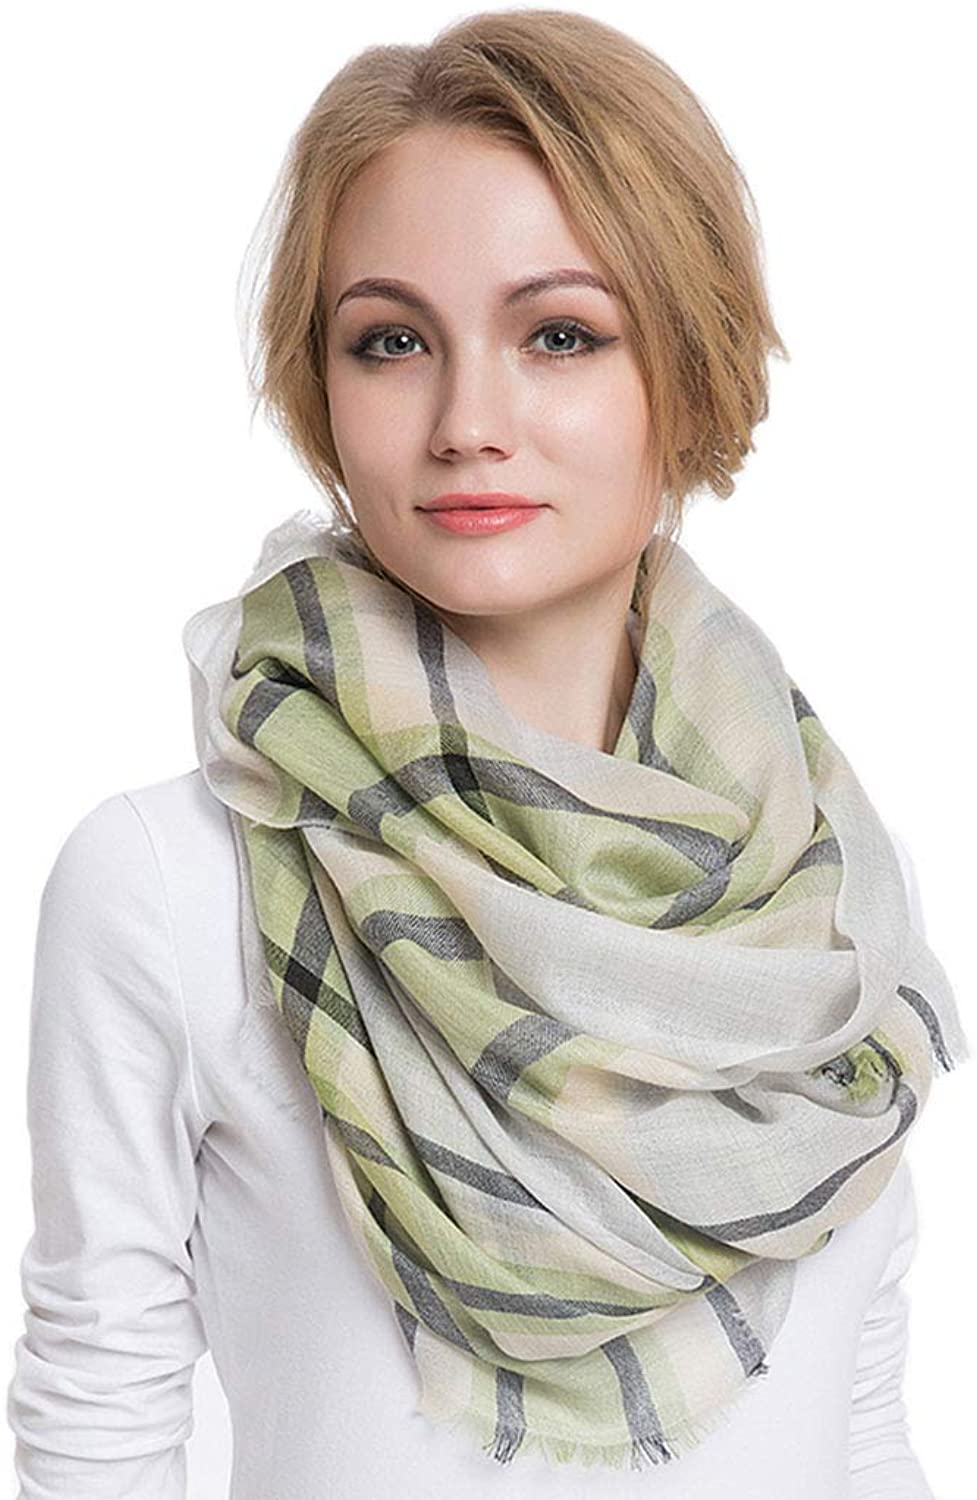 Stoles Scarf Cashmere Shawl Scarf Spring and Autumn Winter Thin Fashion Scarf Ladies Cashmere Tassel Shawl (color   Green, Size   200  90 cm)